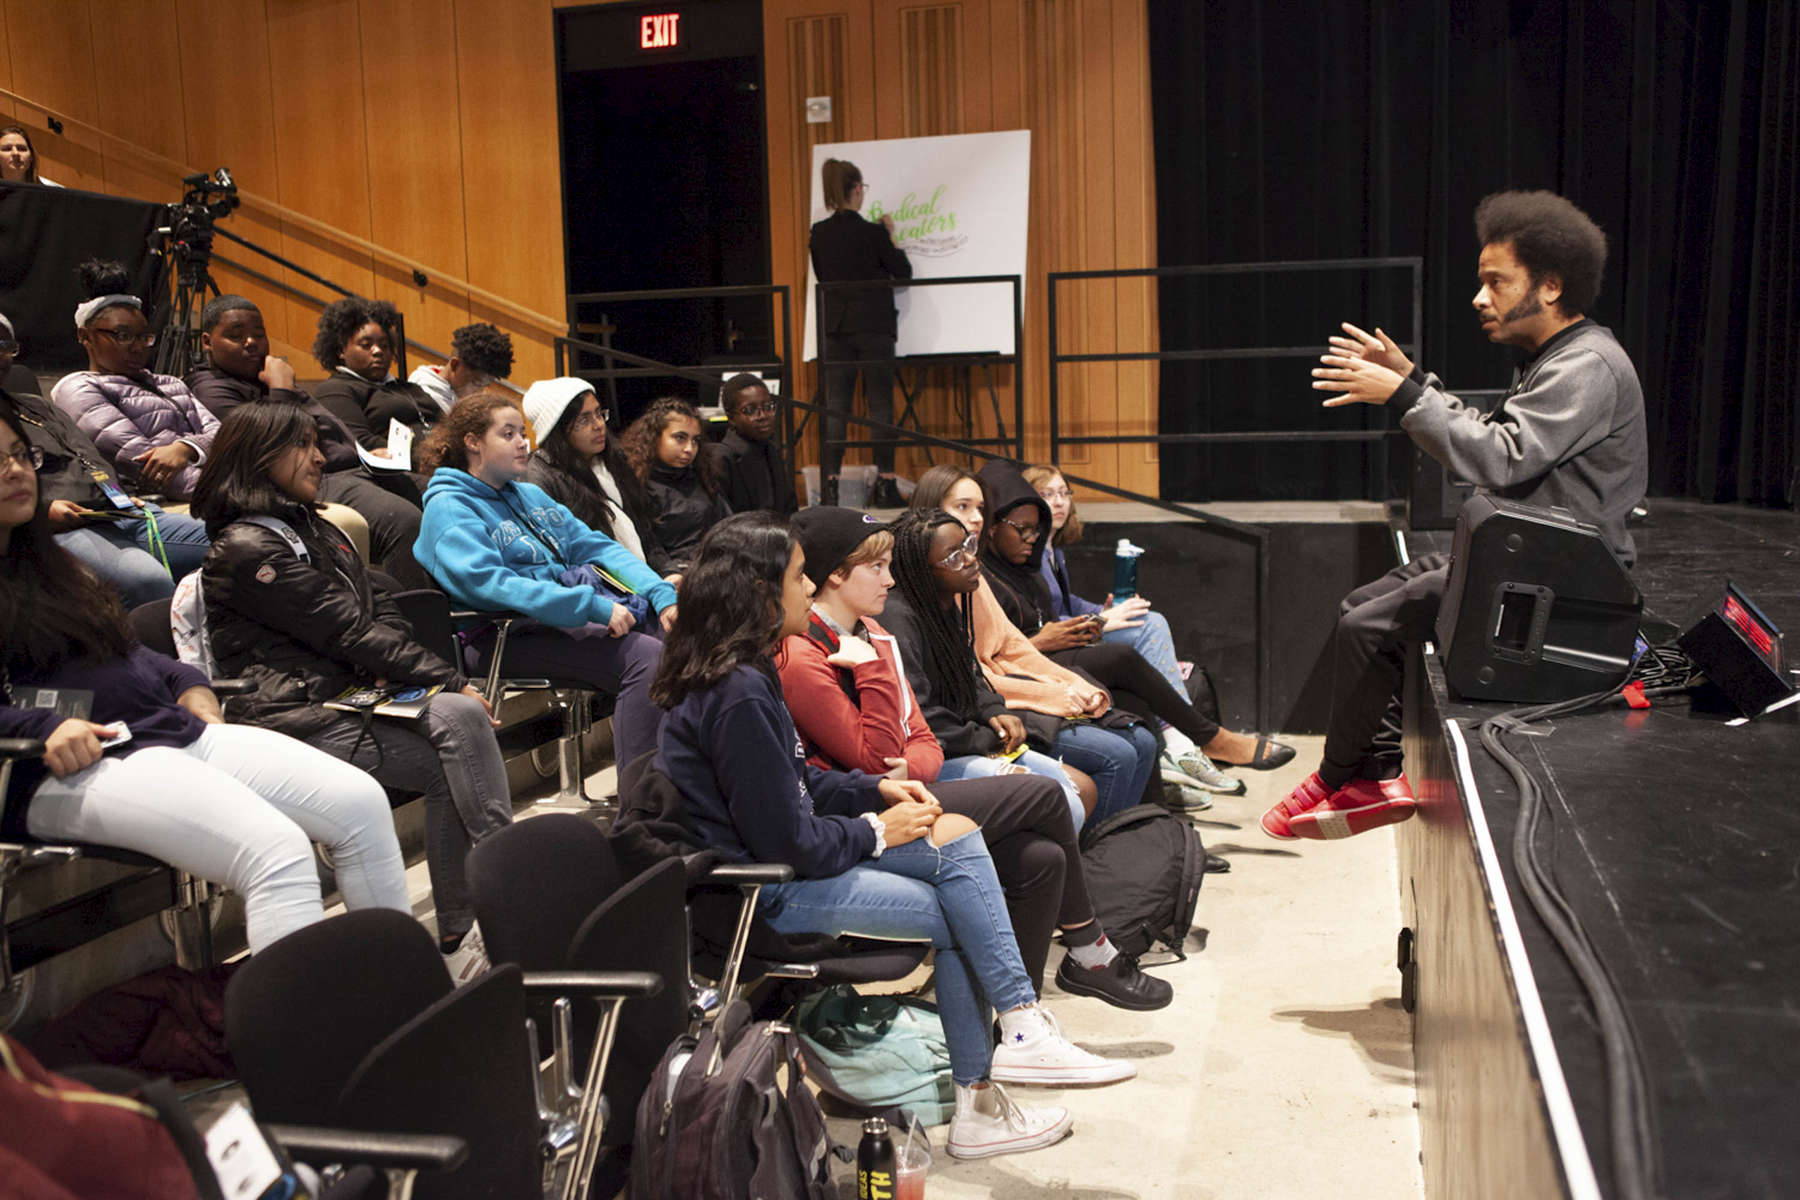 Throughout the week high school groups attended different panels and had the chance to speak with panelists.